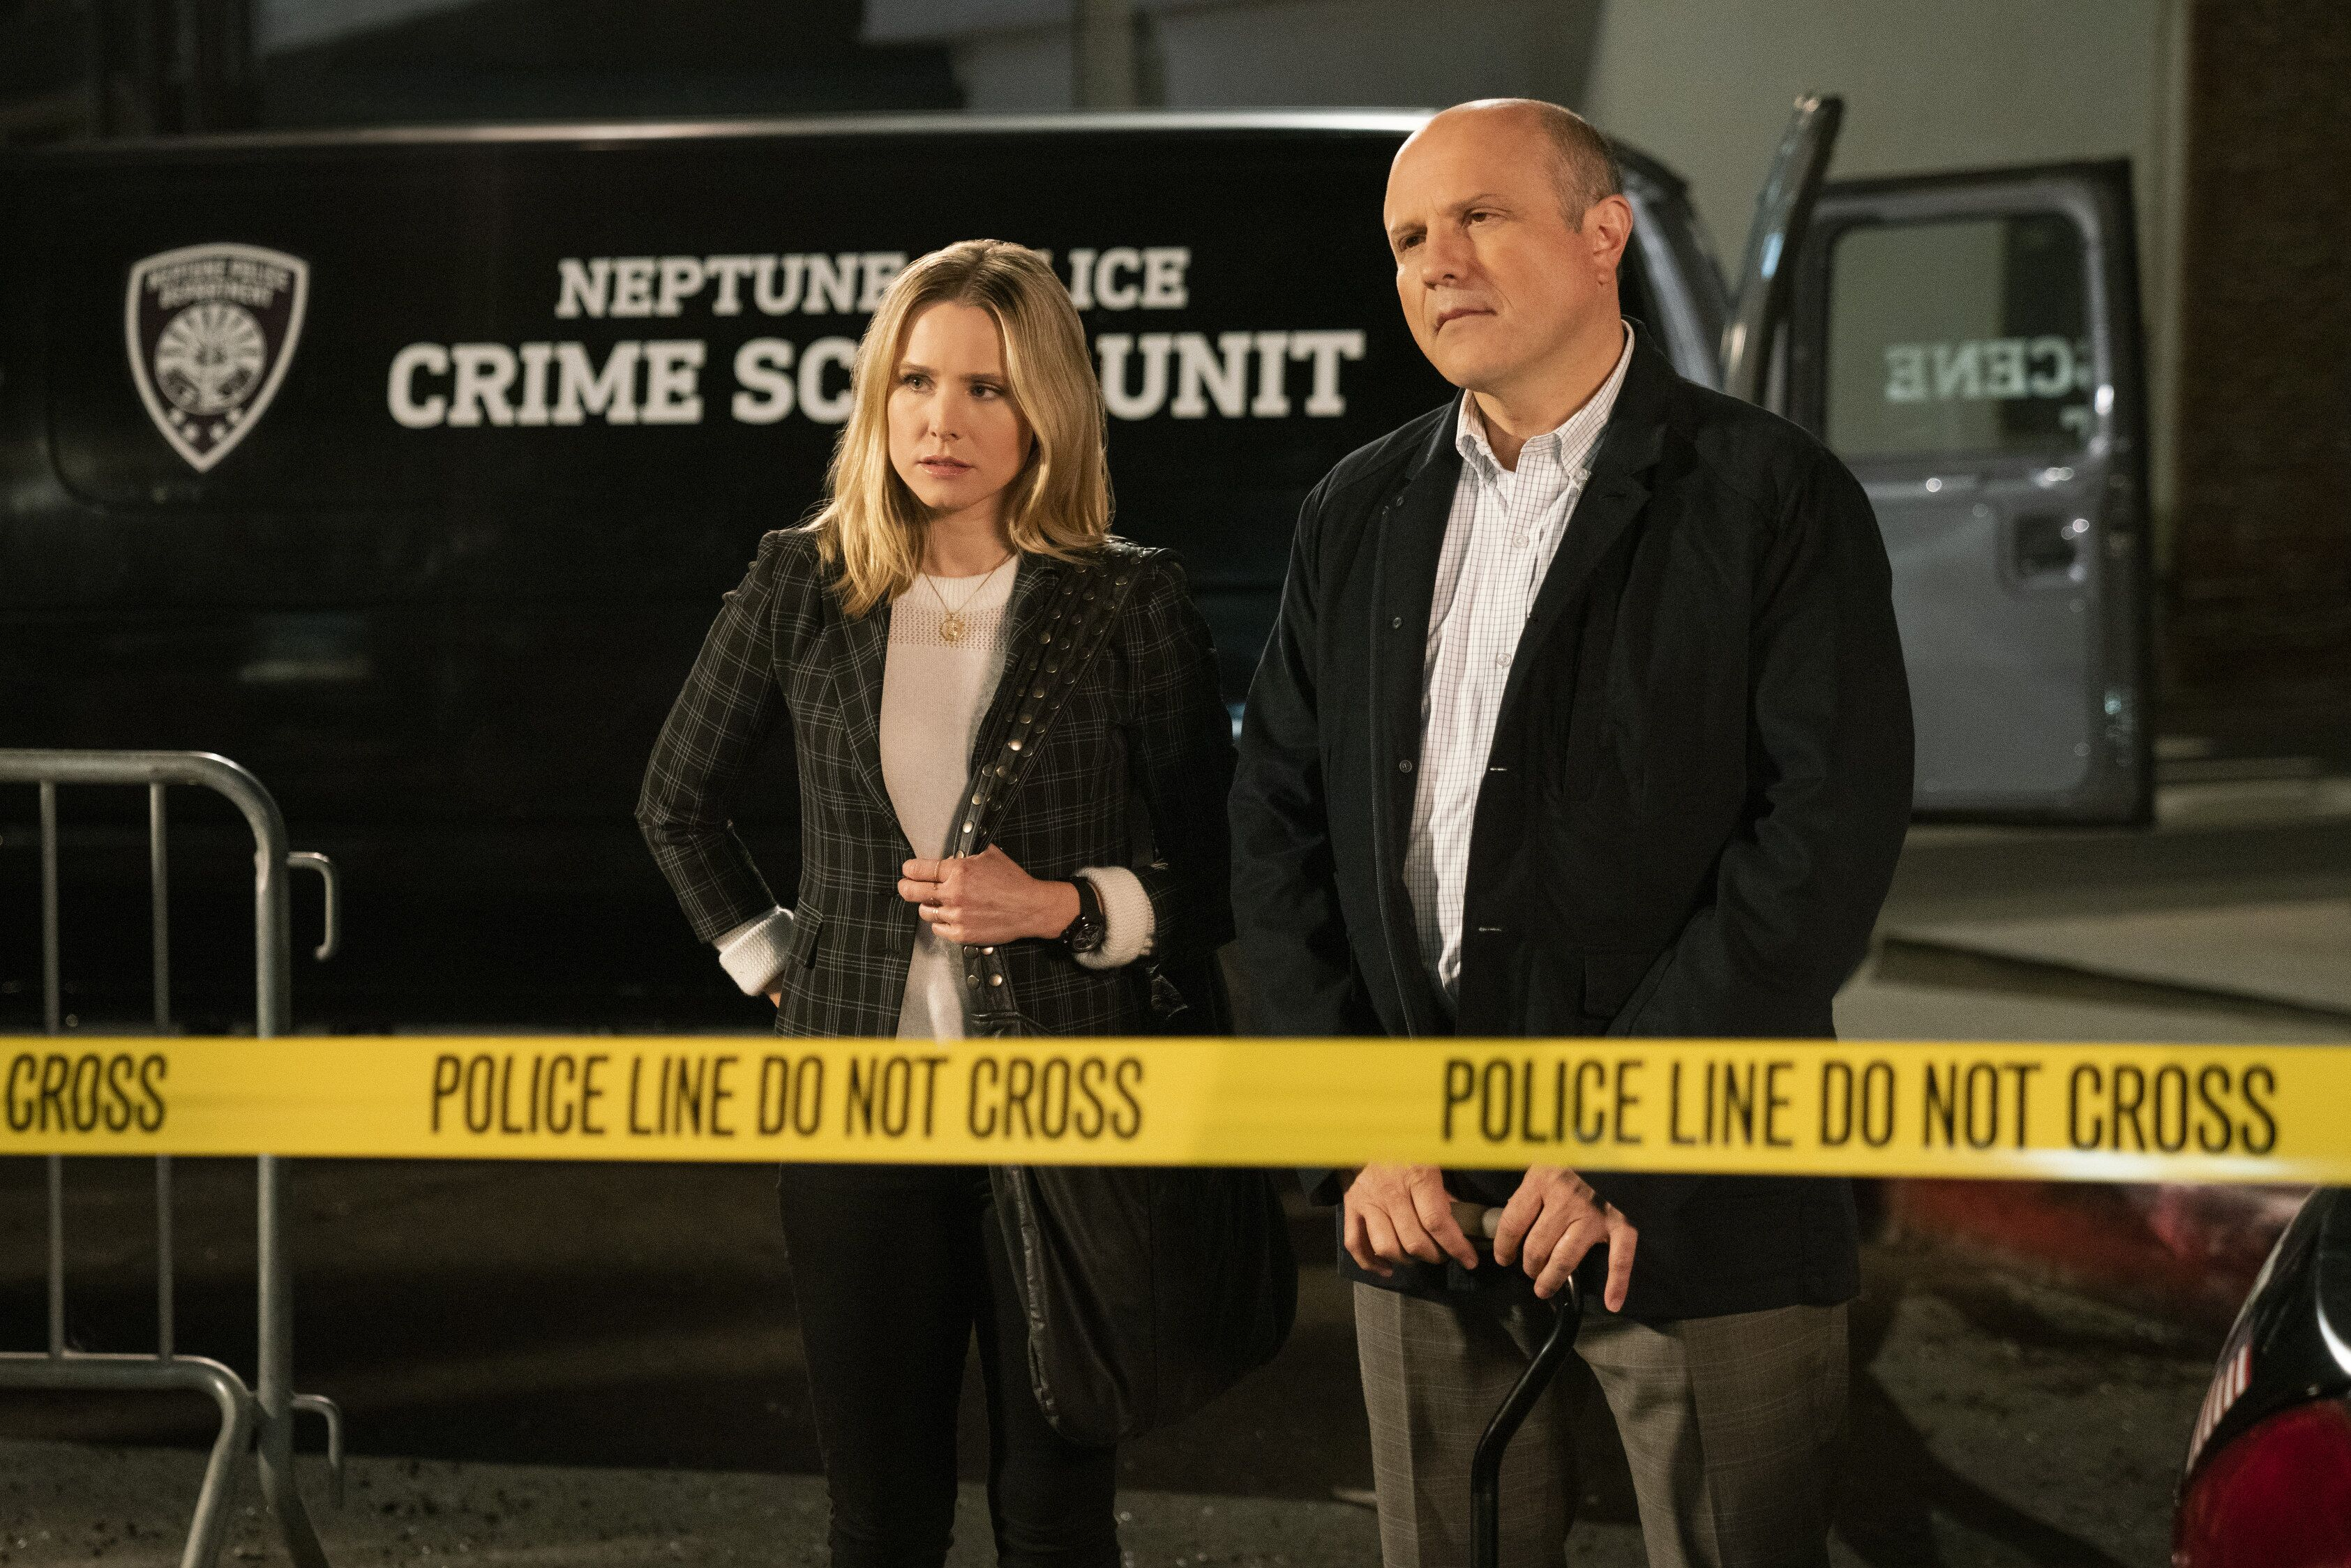 Veronica Mars at SDCC 2019: Everything you need to know about today's panel